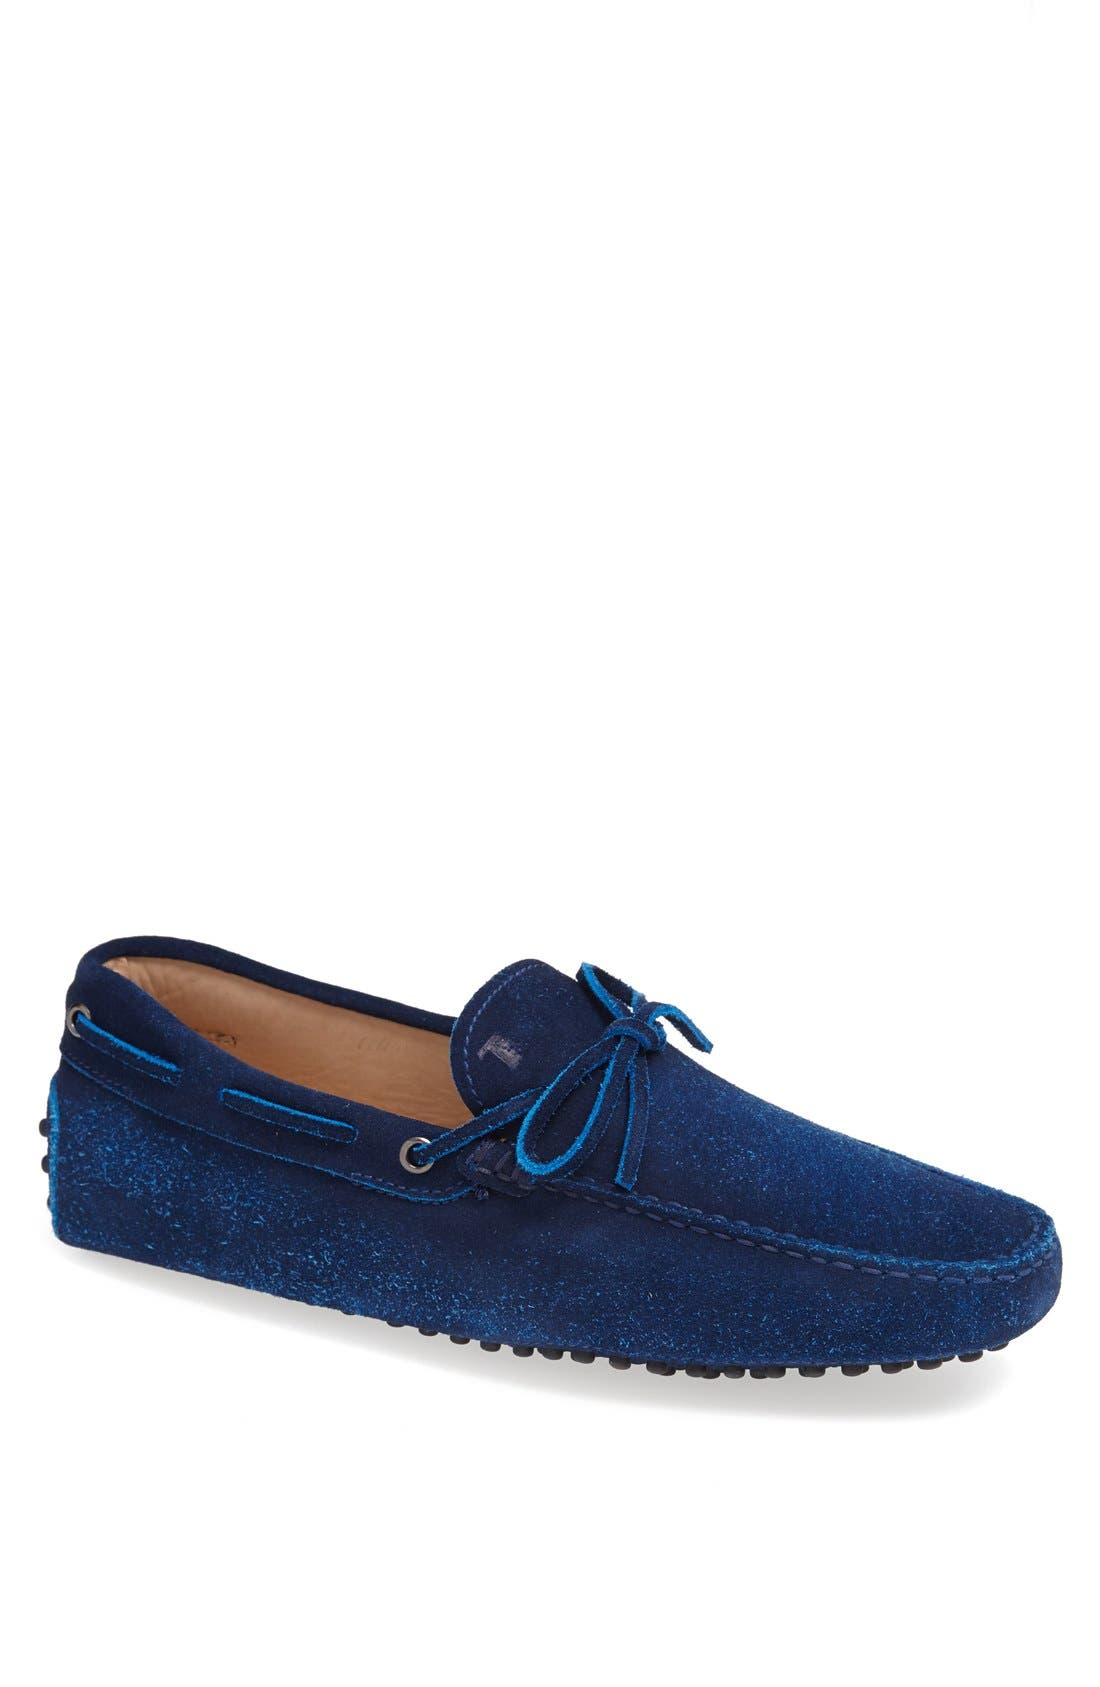 Alternate Image 1 Selected - Tod's 'Giommini' Driving Shoe